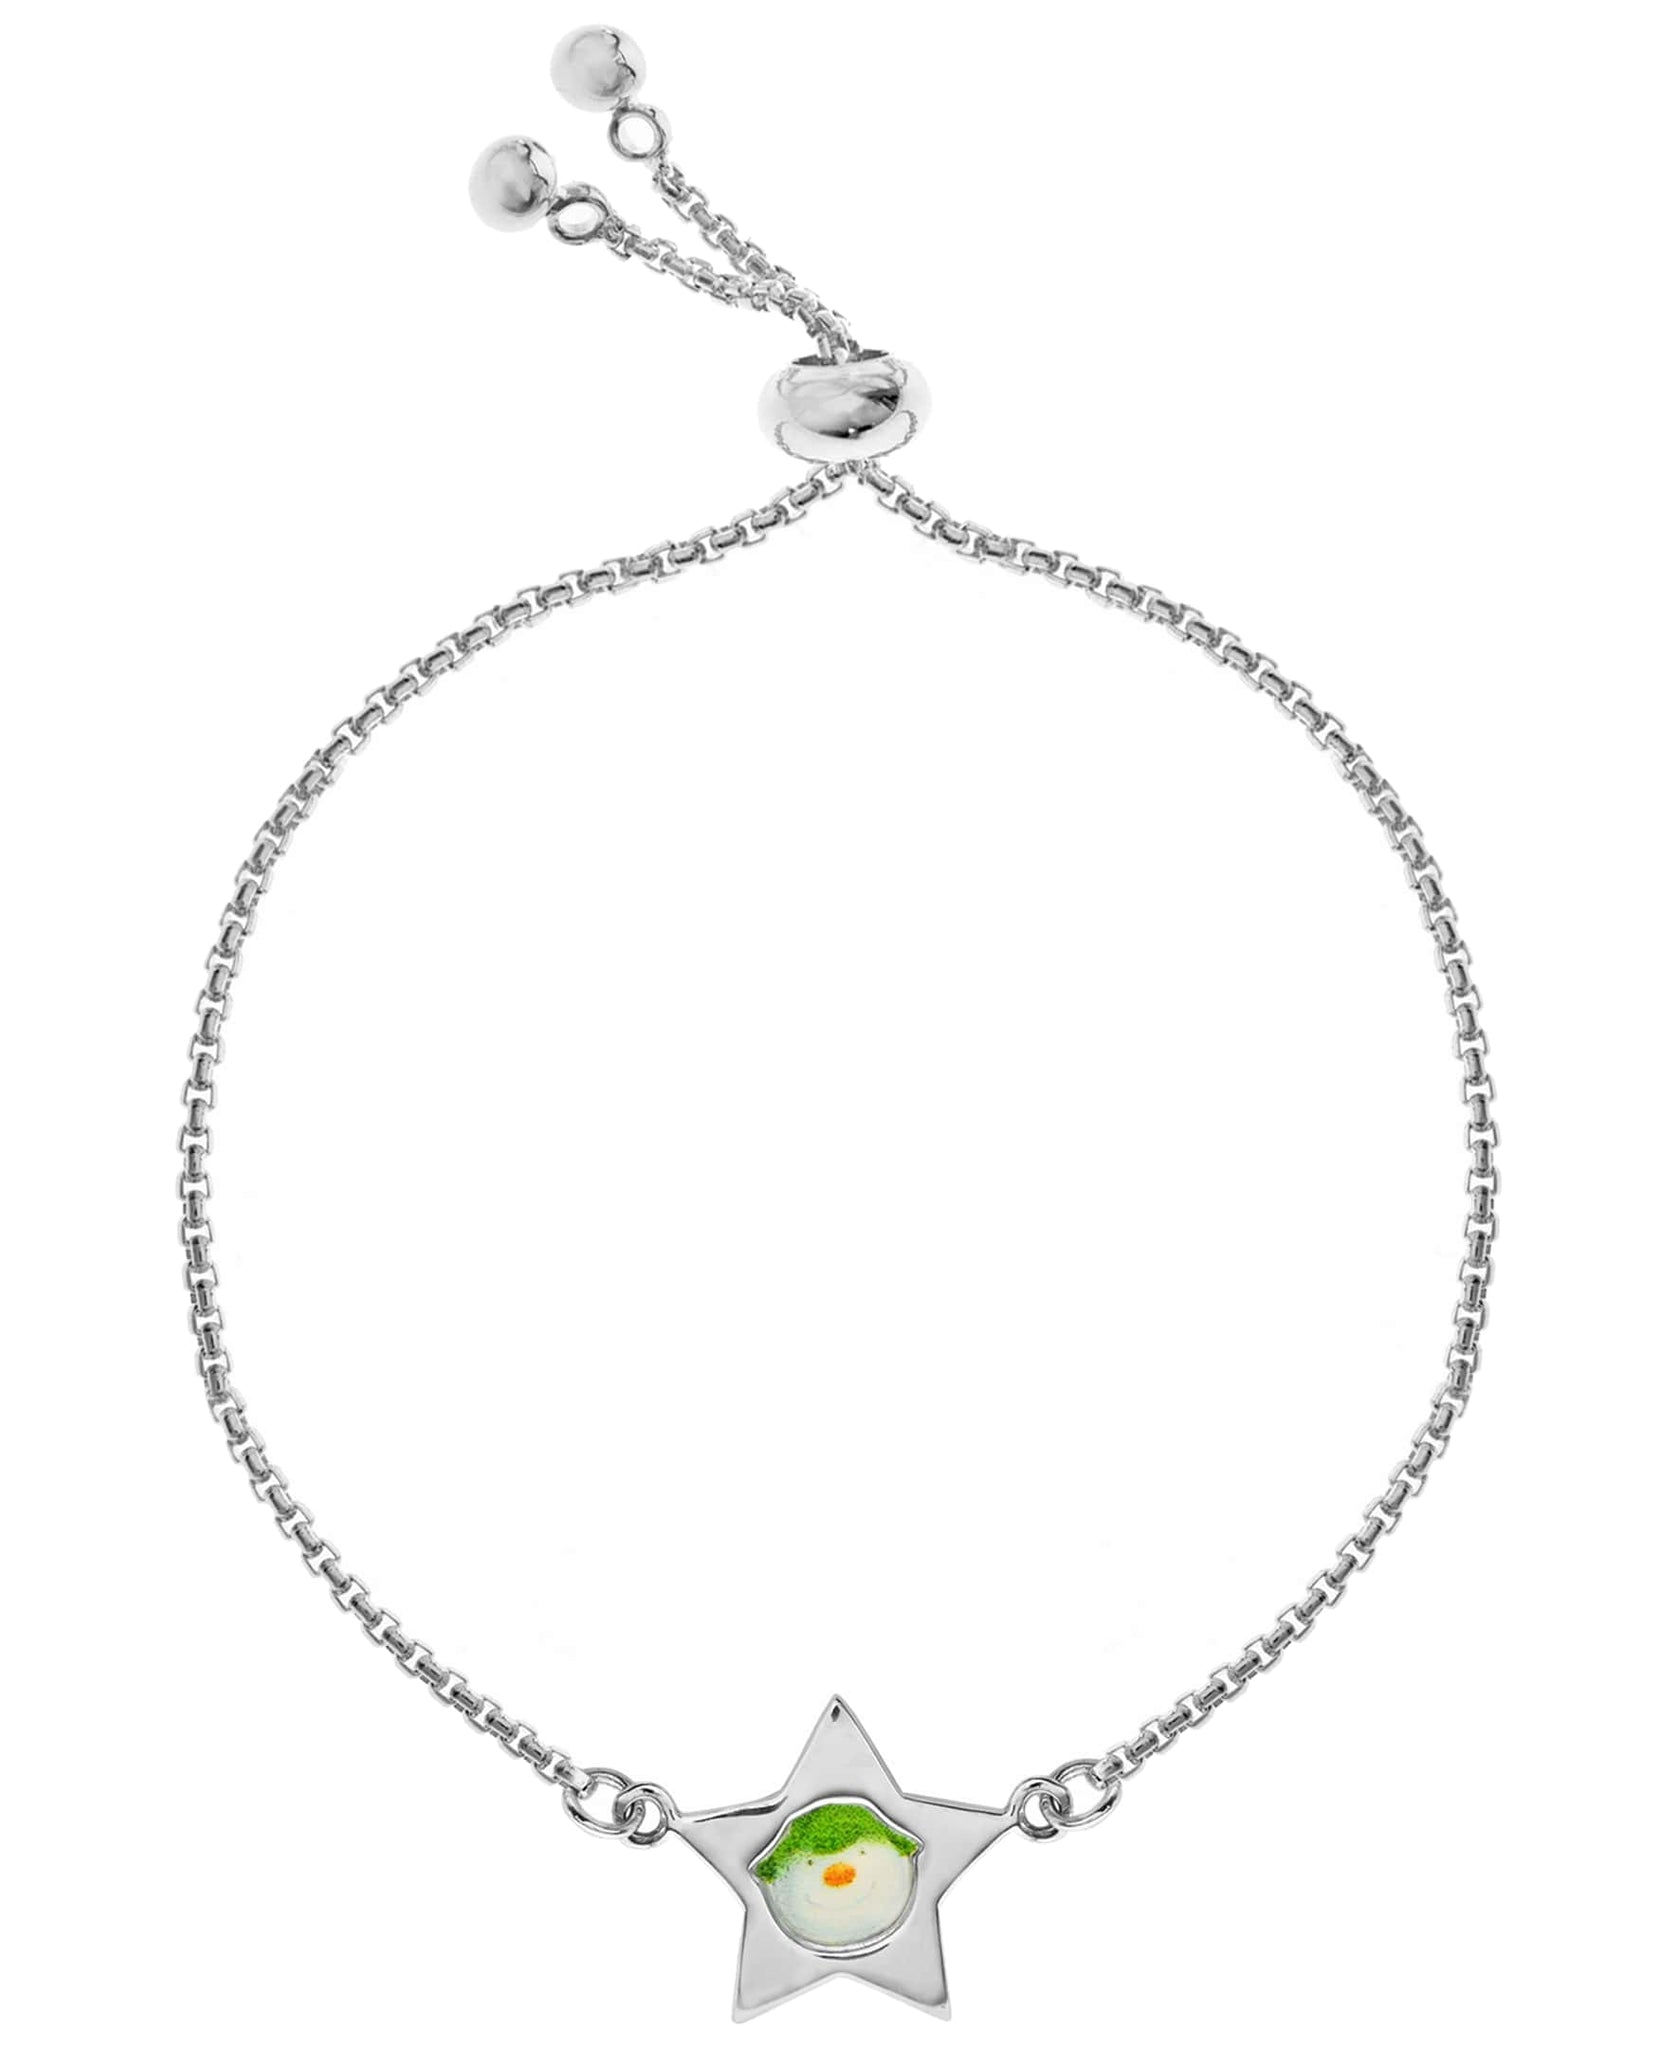 Snowman Star Charm Friendship Bracelet - Rhona Sutton Jewellery